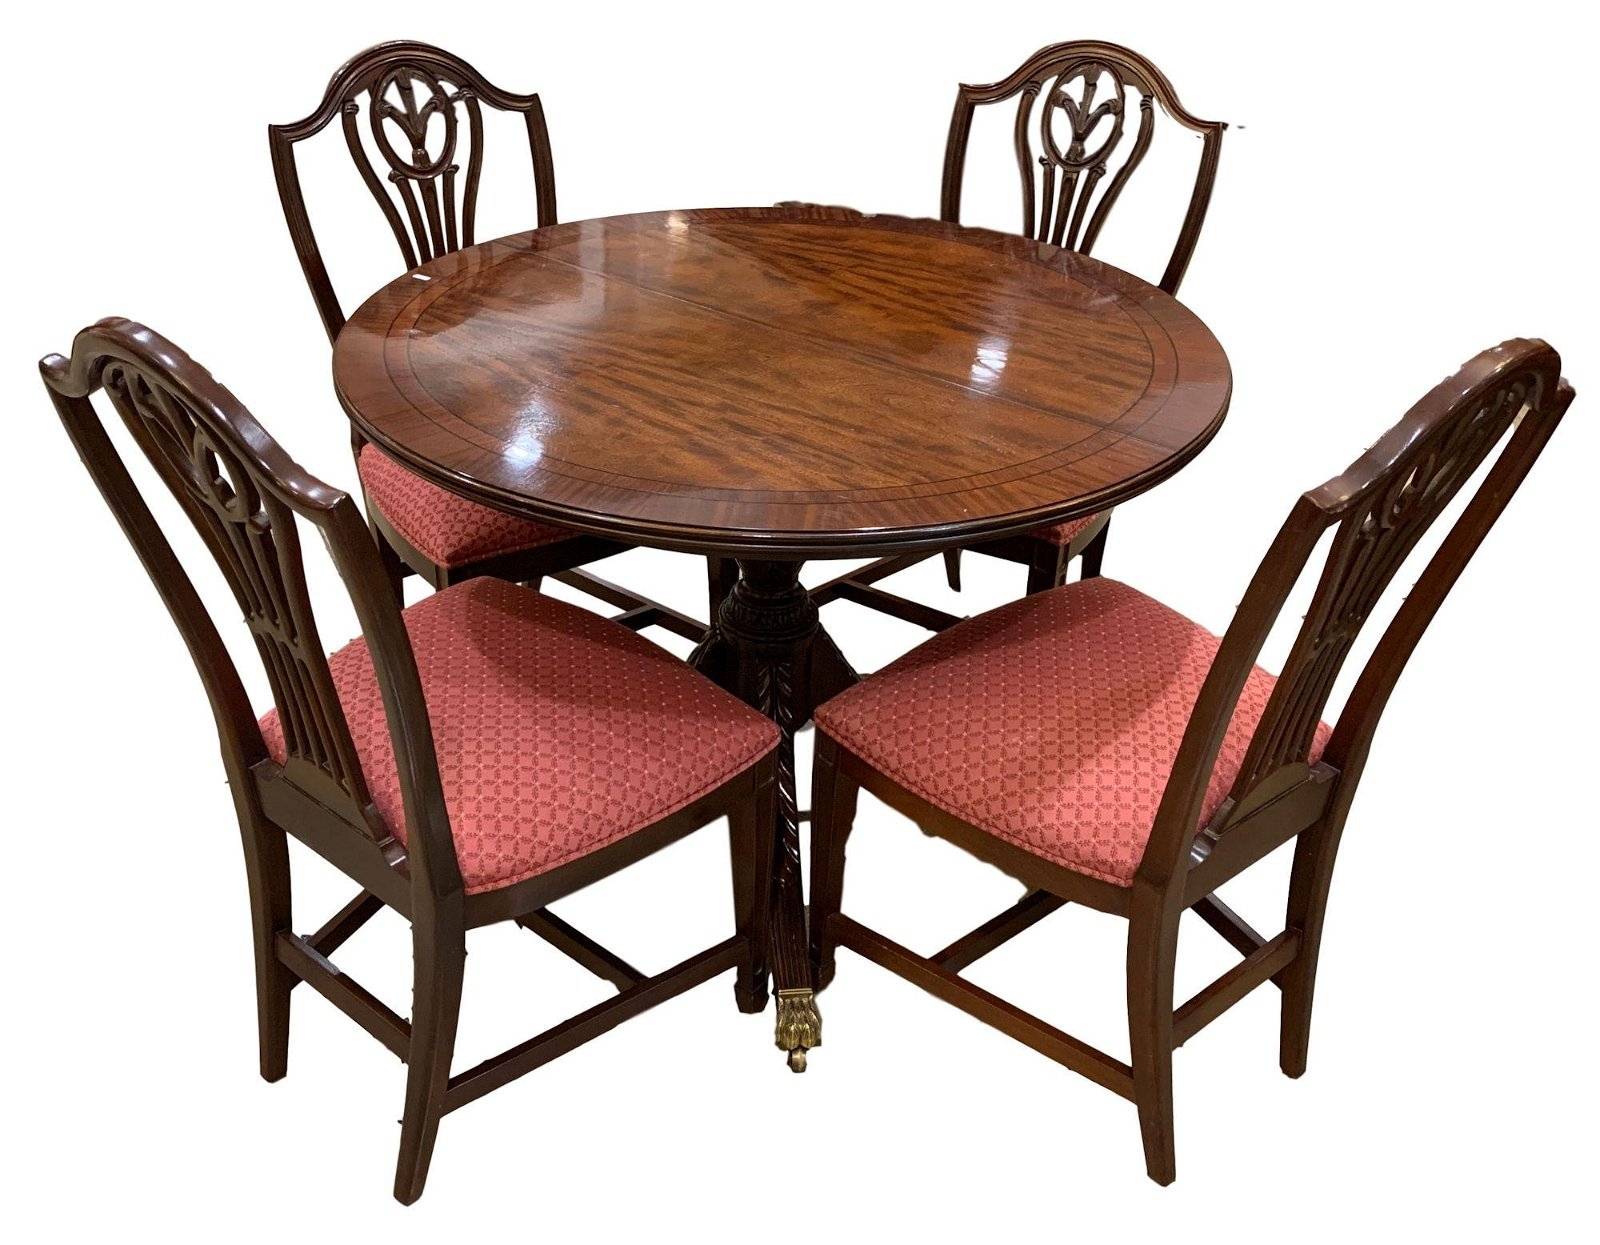 ROUND BANDED MAHOGANY TABLE AND 4 CHIPPENDALE STYLE